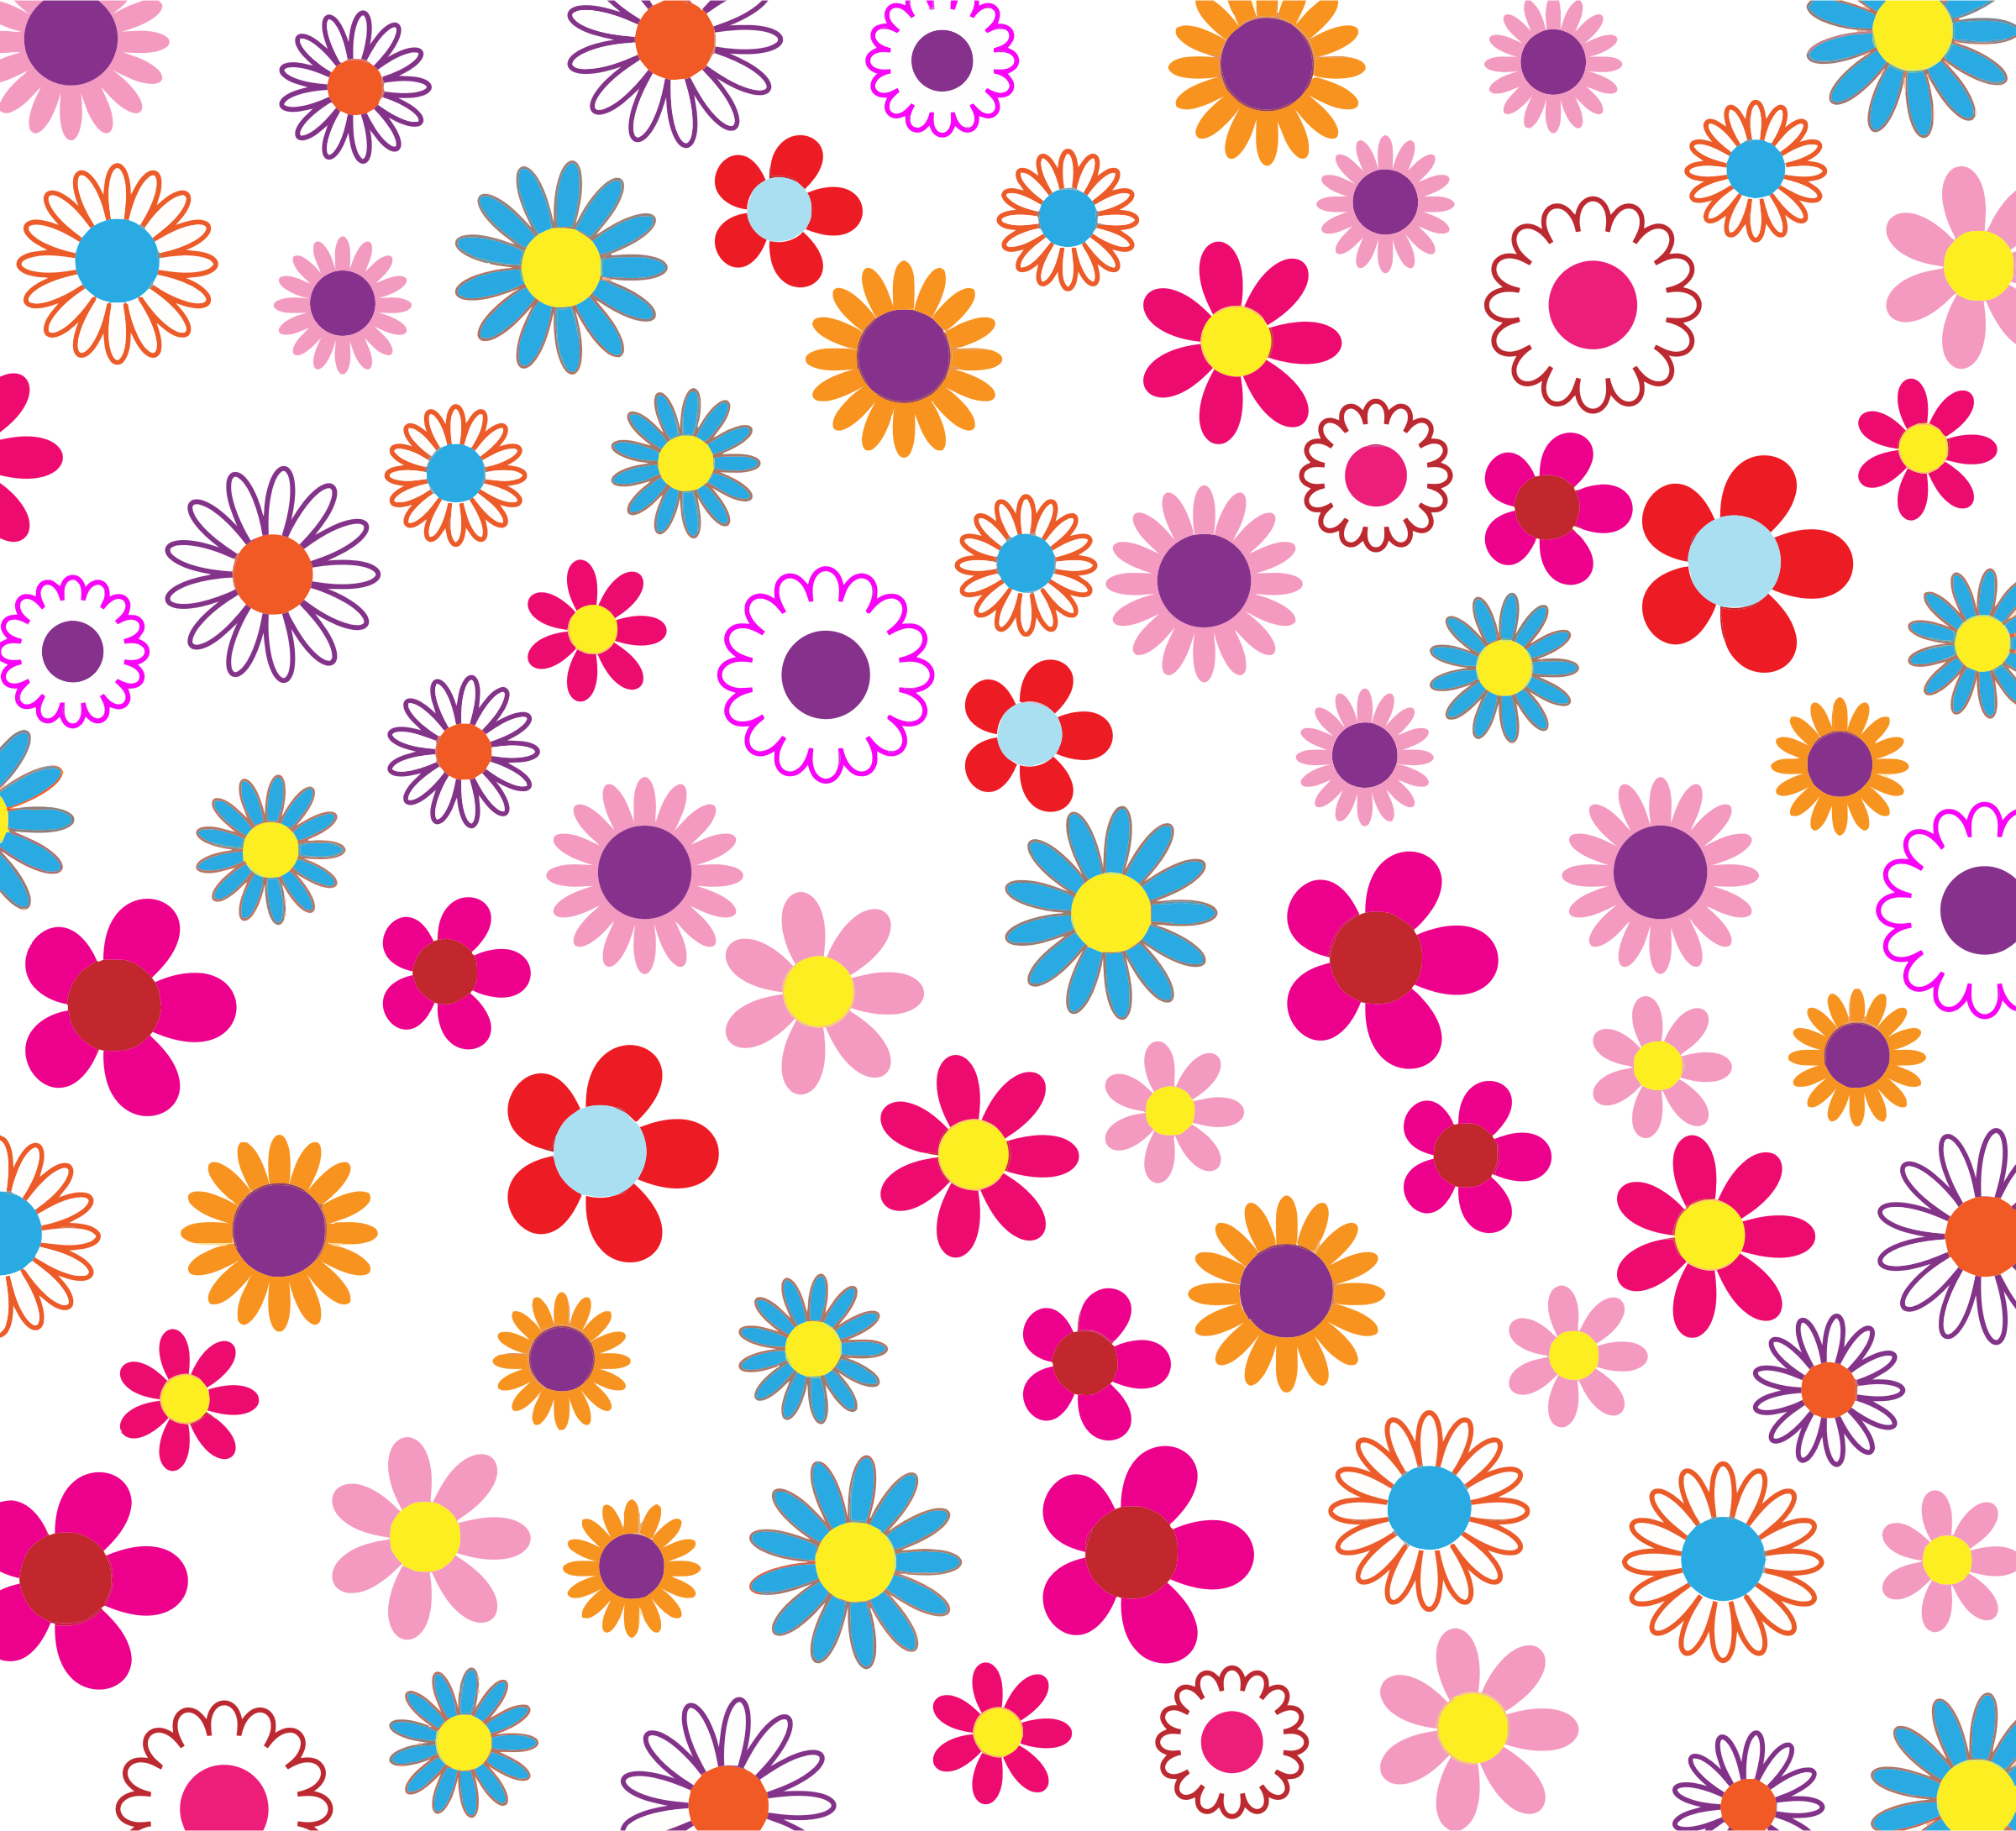 Background clipart floral. Free cliparts download clip